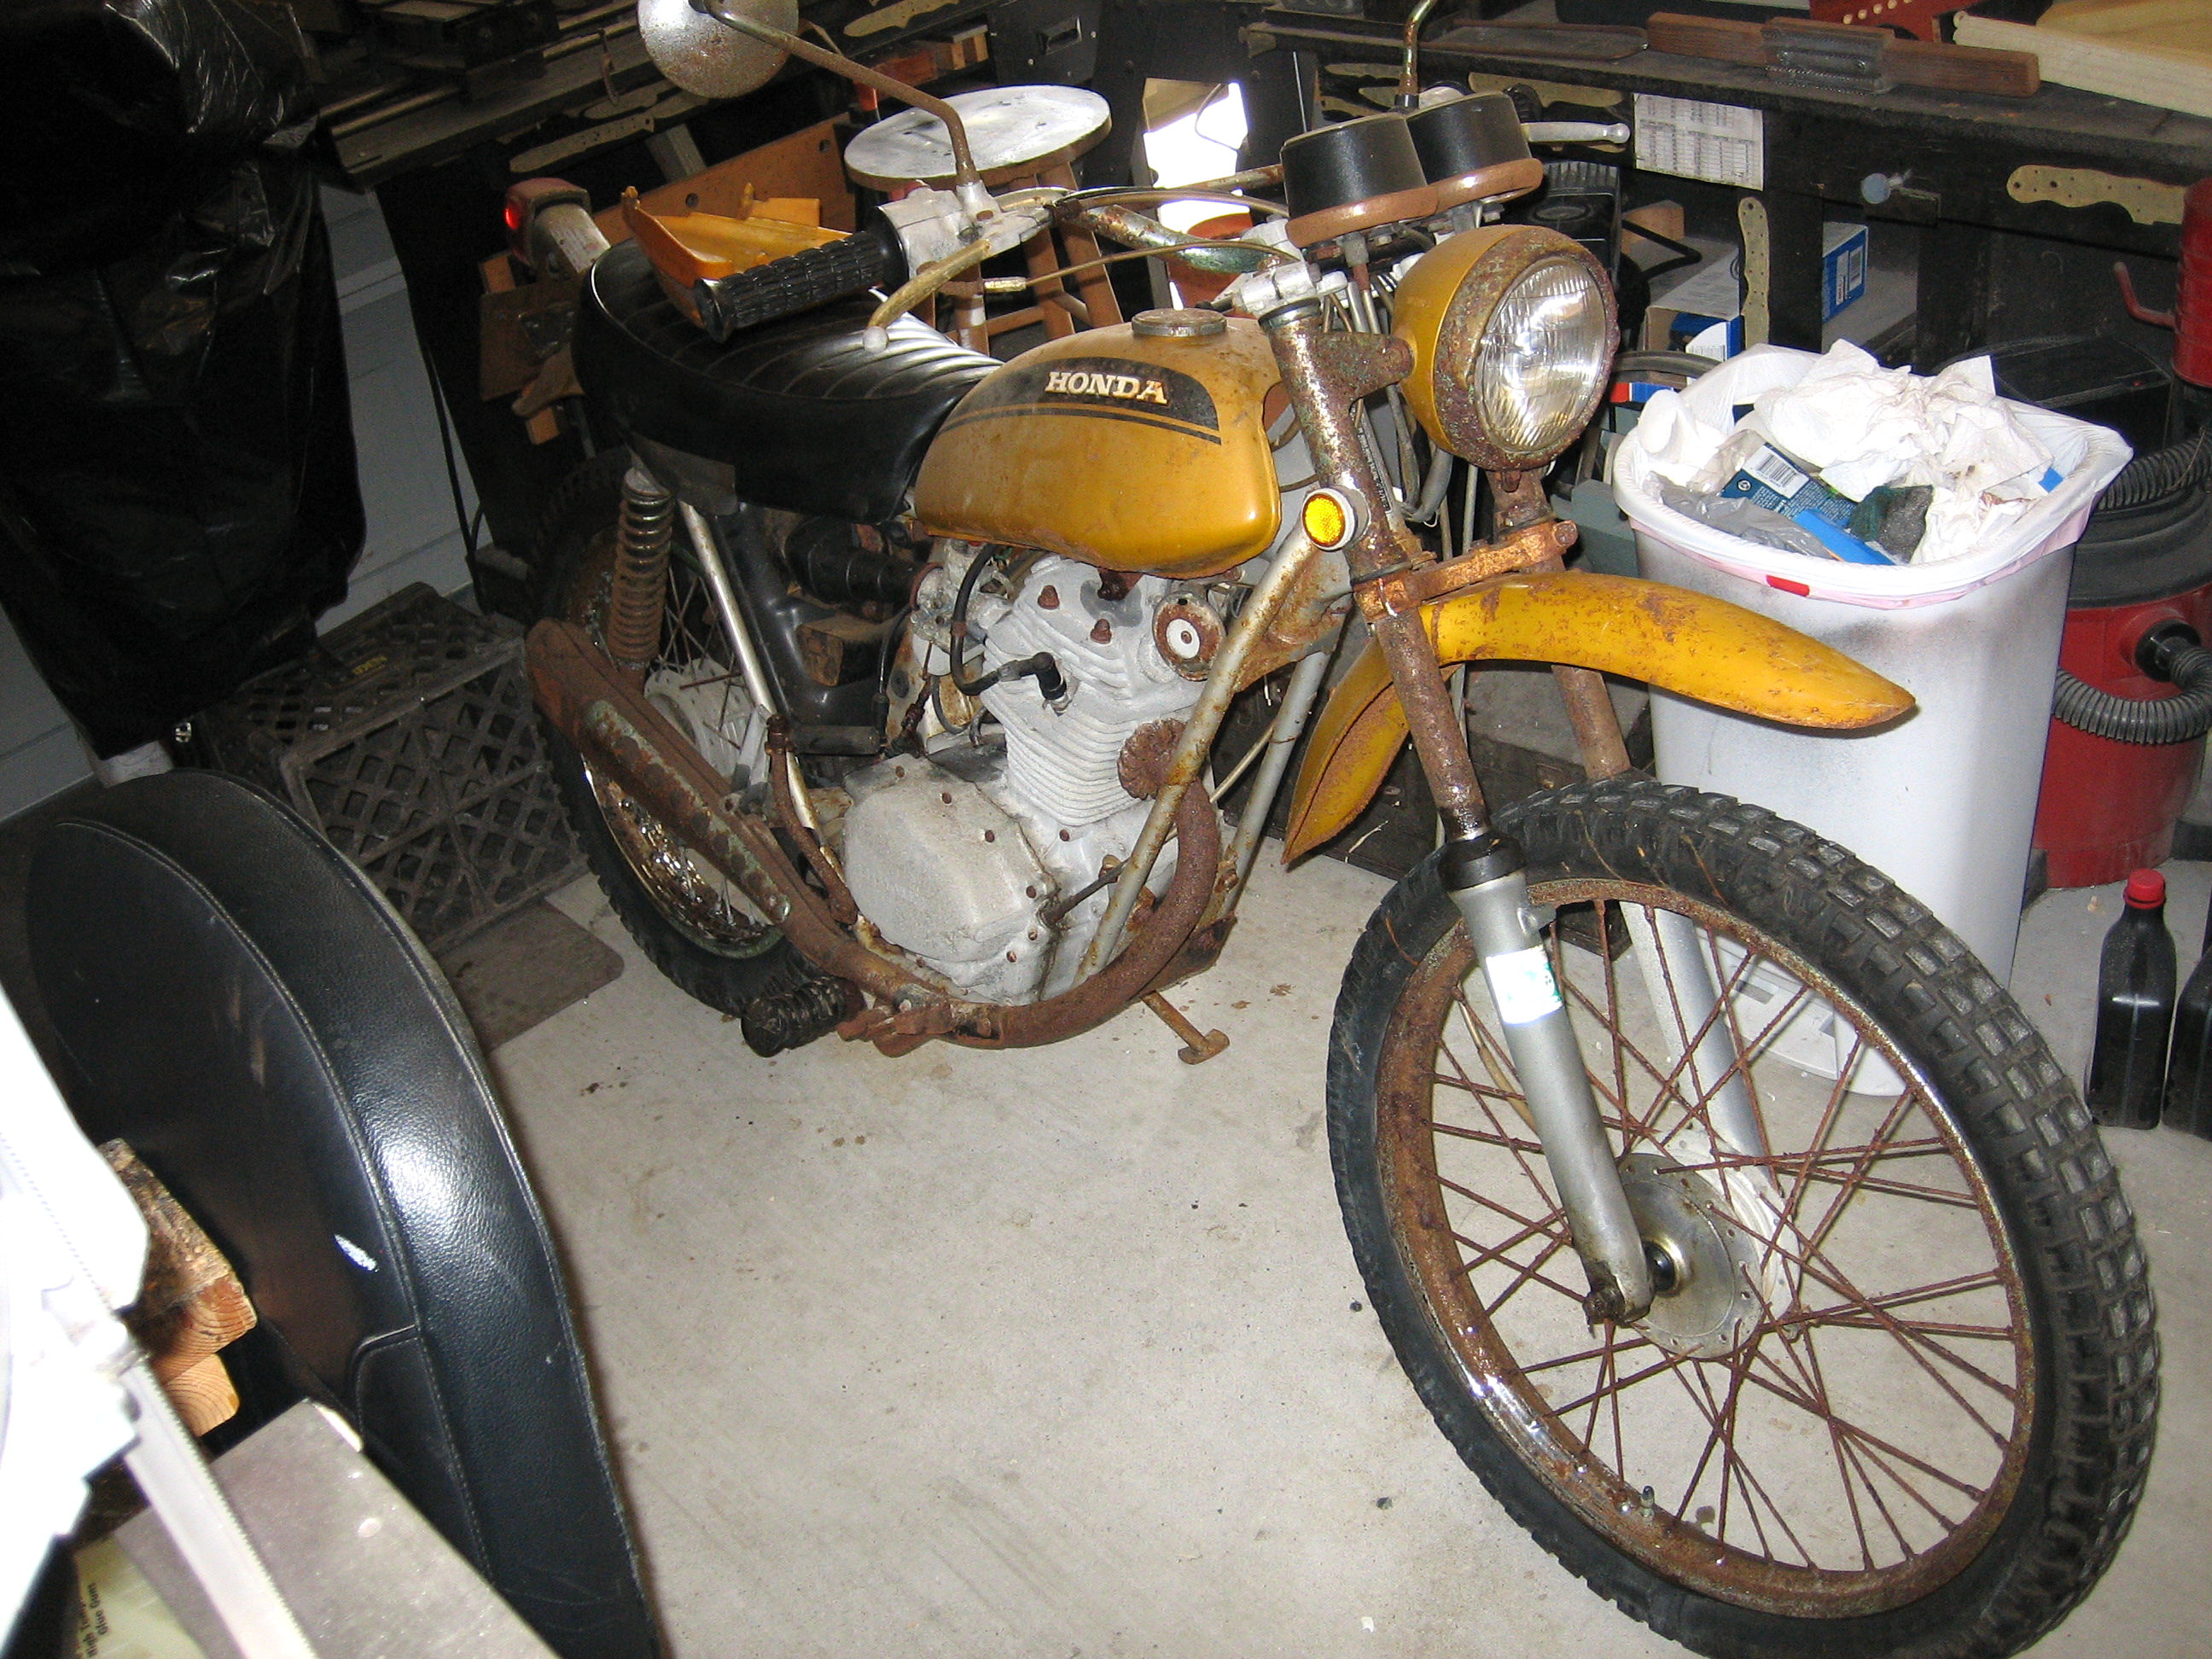 Resurrecting a 38 year old motorcycle